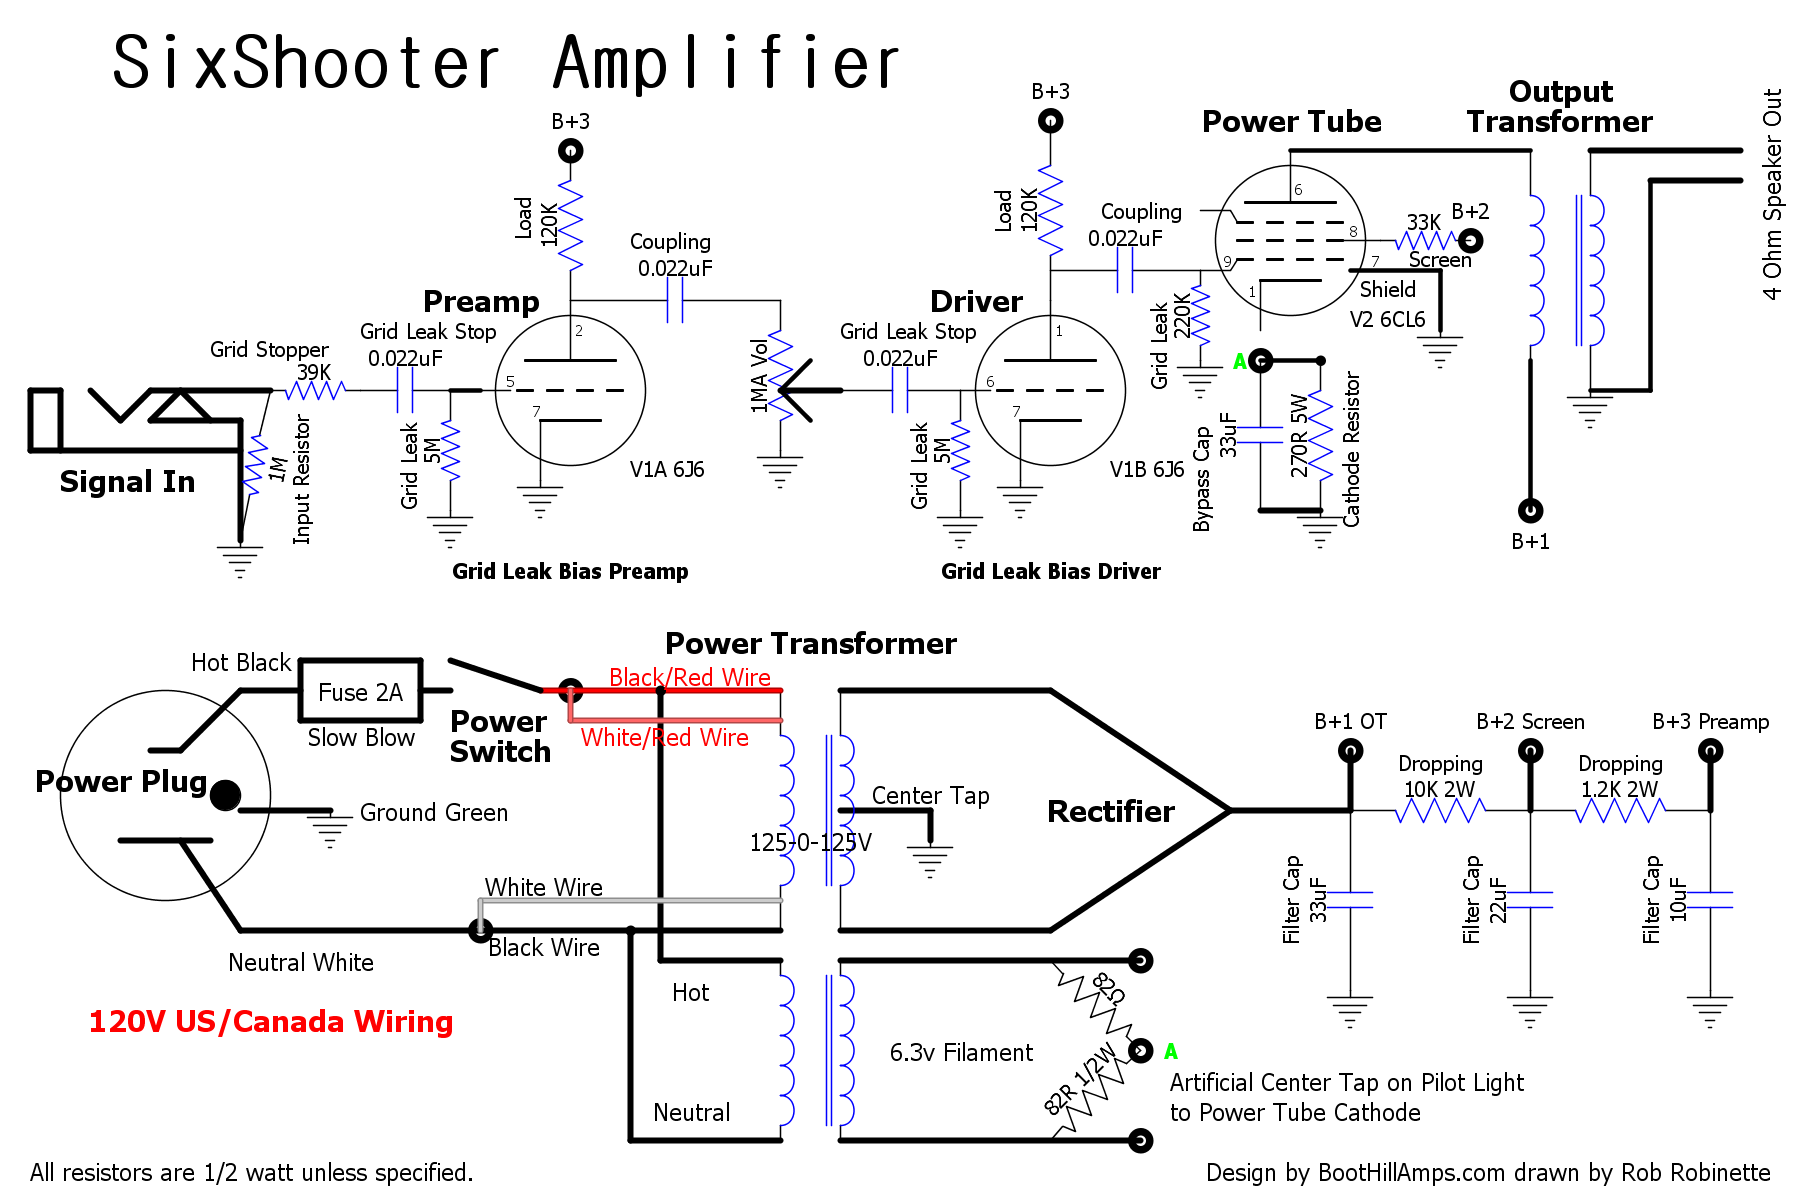 sixshooter if you d like to order a kit follow this link tdpri com forum vendor forum 592510 six shooter guitar amp kits boot hill amps html